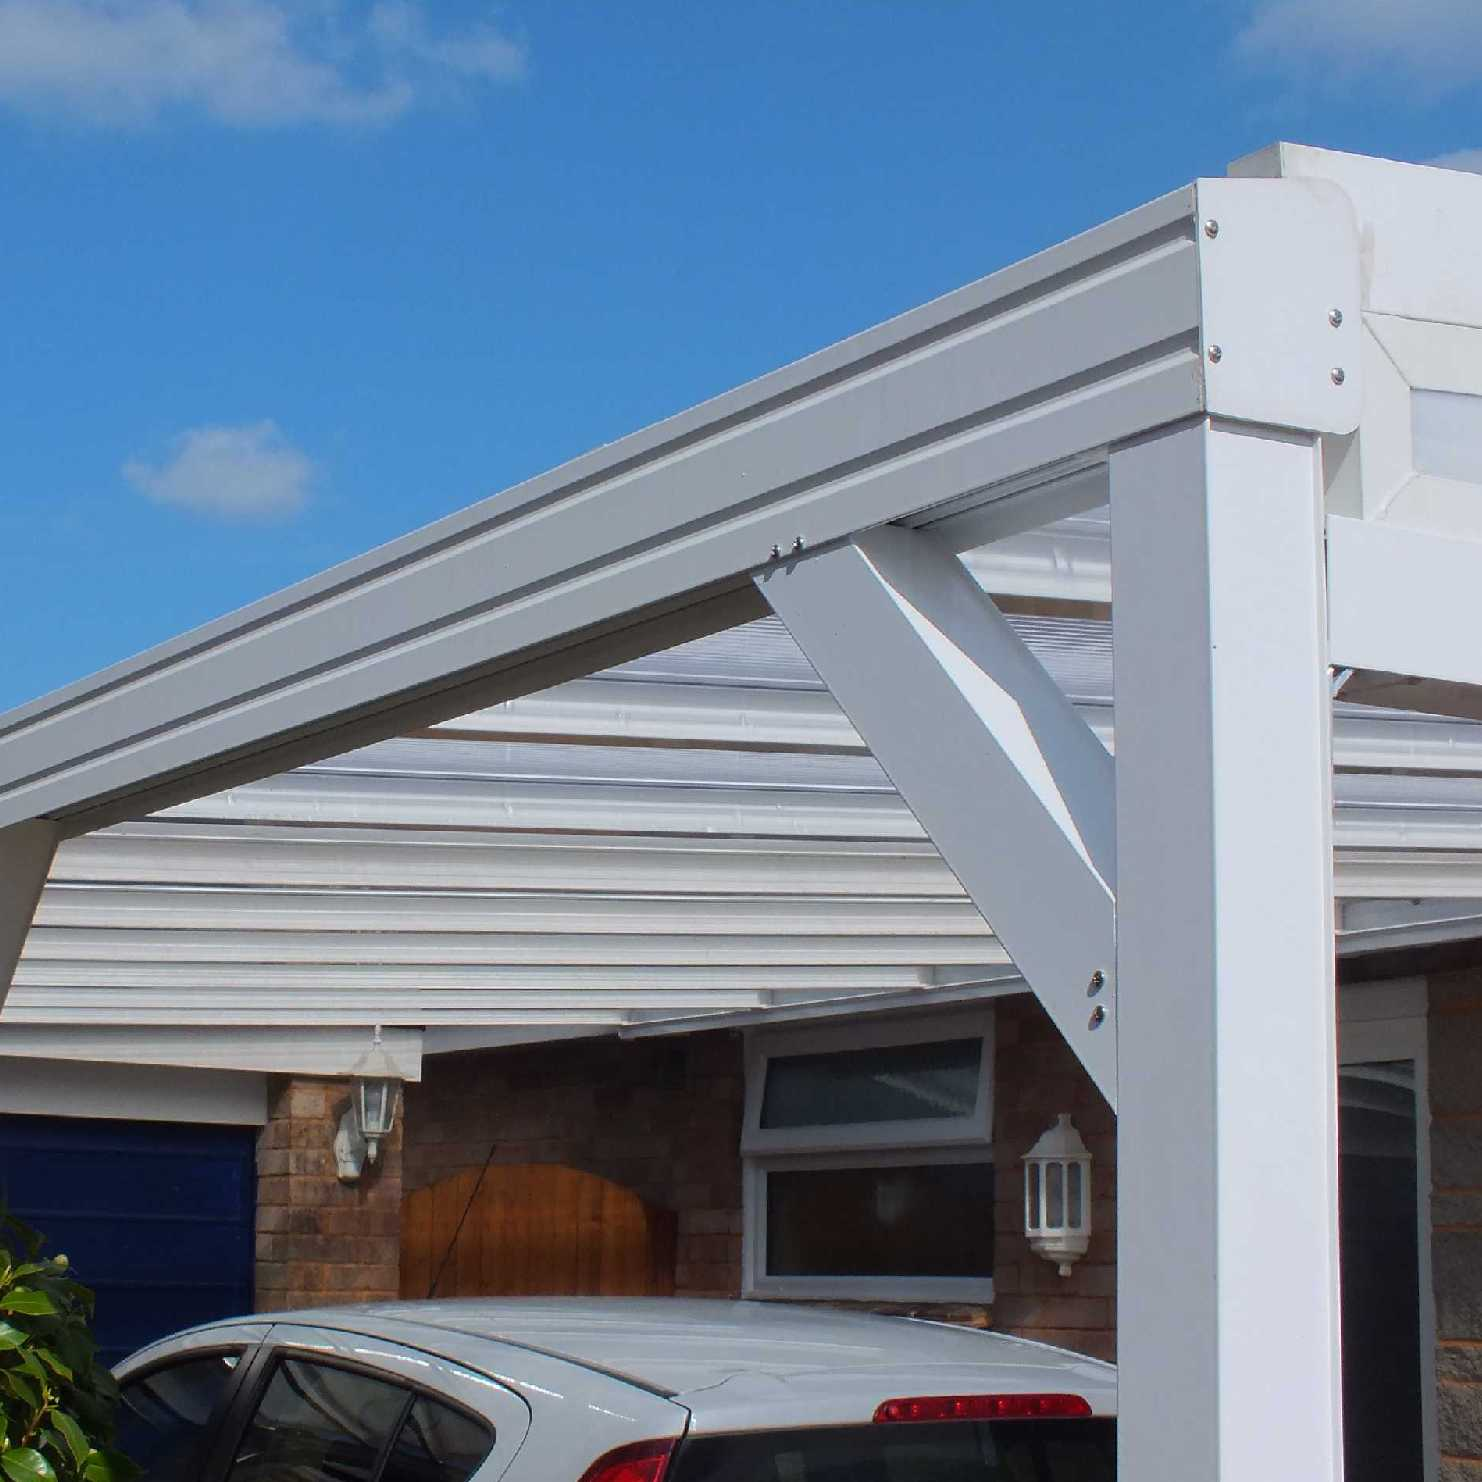 Great deals on Omega Smart White Lean-To Canopy with 16mm Polycarbonate Glazing - 11.6m (W) x 2.5m (P), (5) Supporting Posts